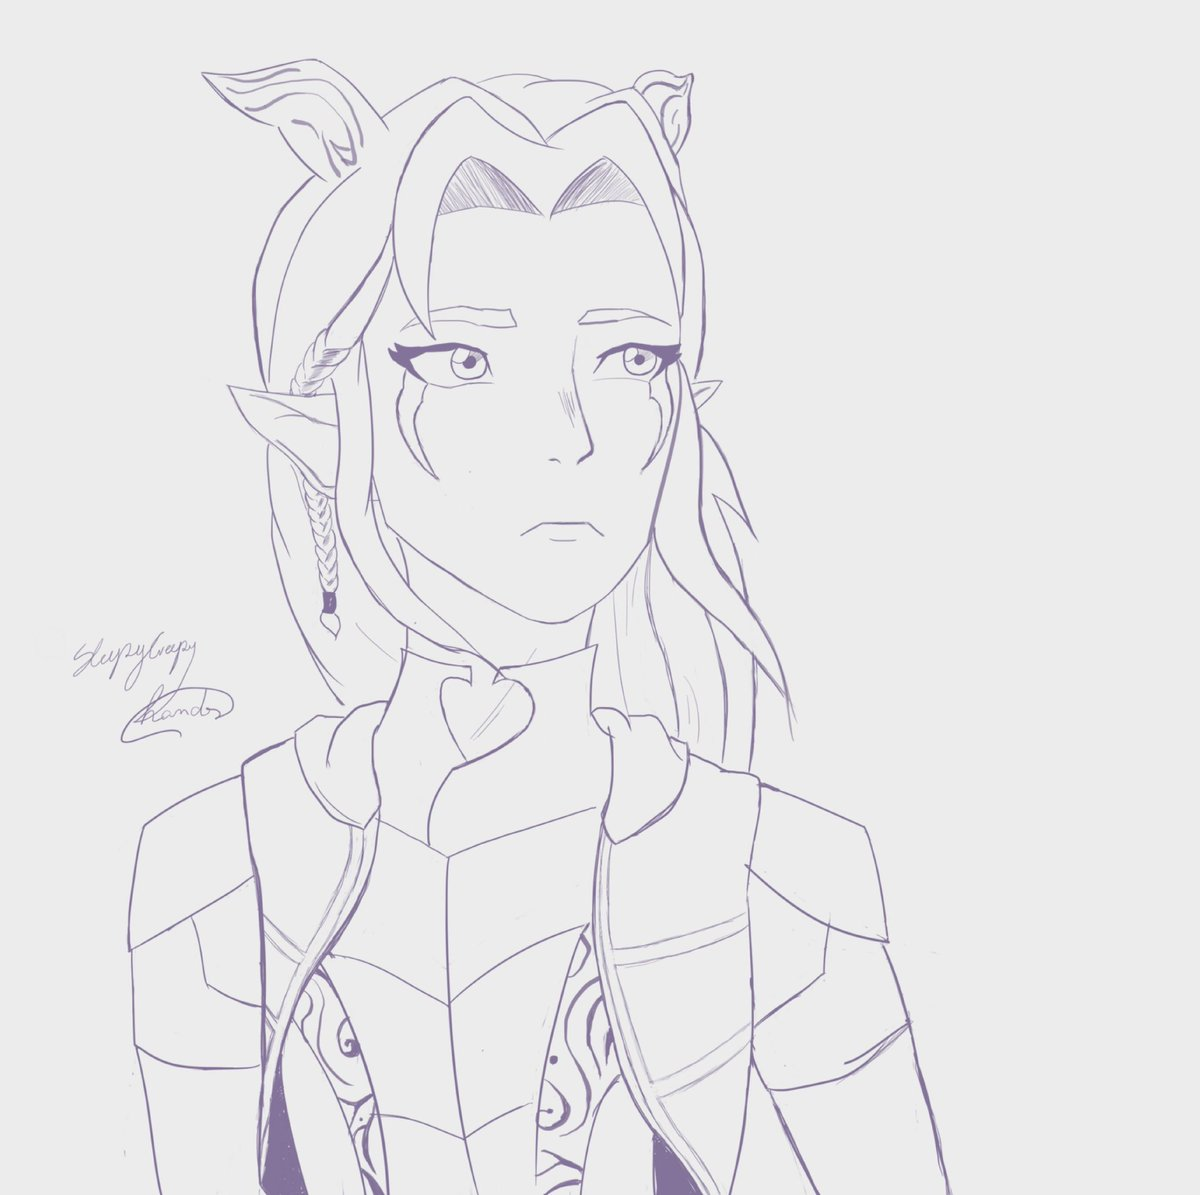 rayla lineart #TheDragonPrince #tdpart<br>http://pic.twitter.com/1ovtM47F1c